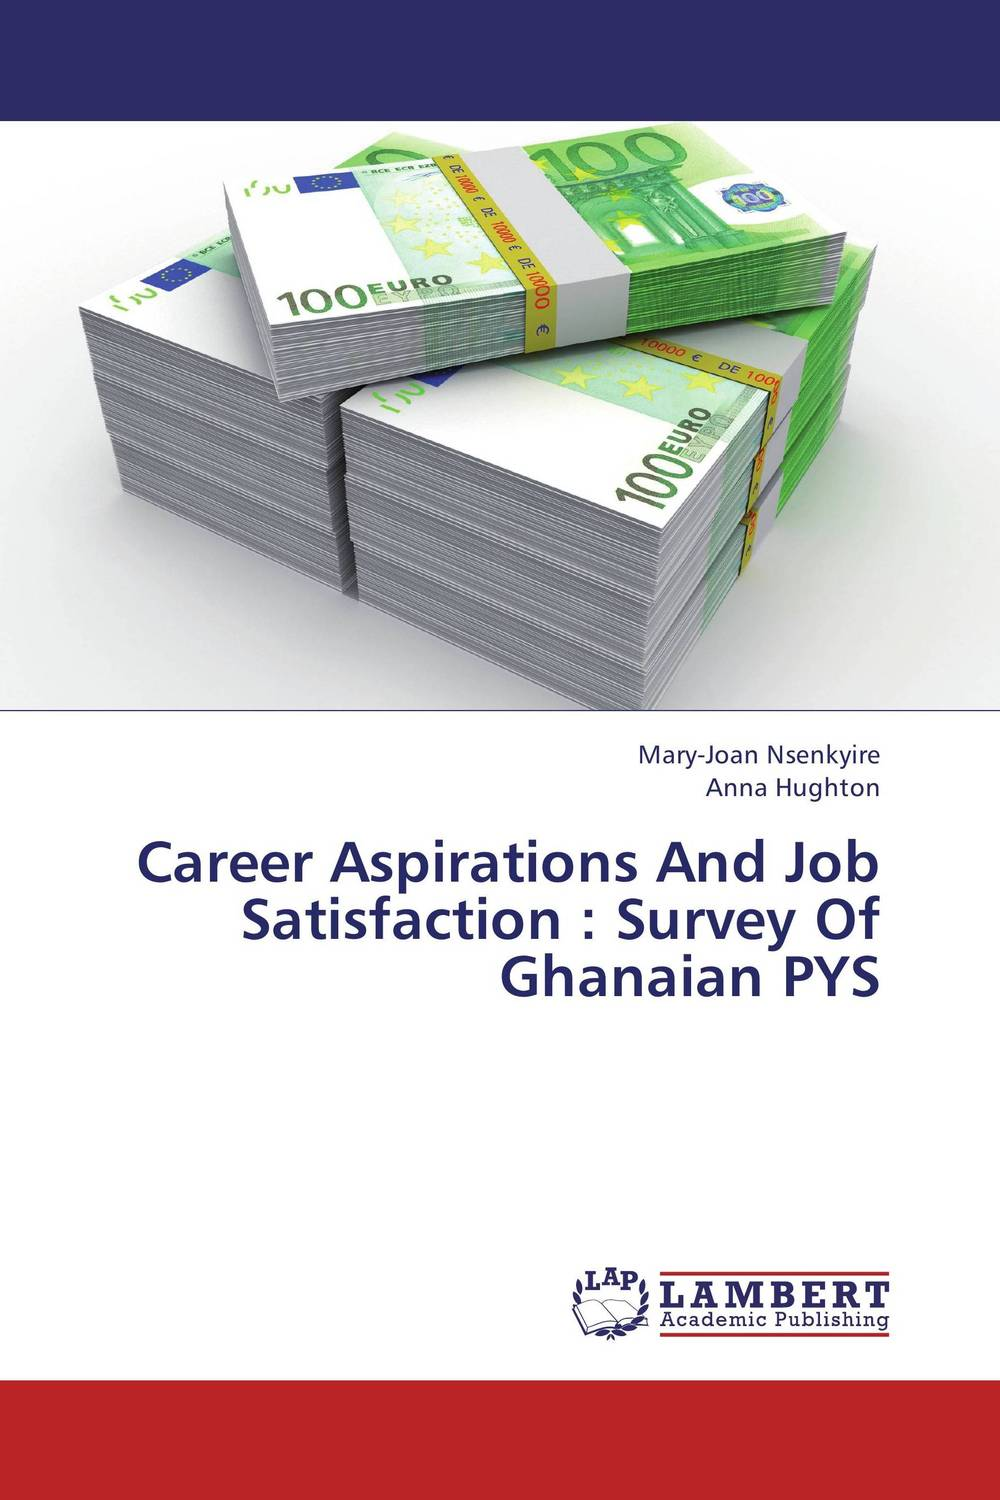 Career Aspirations And Job Satisfaction : Survey Of Ghanaian PYS the assistant principalship as a career